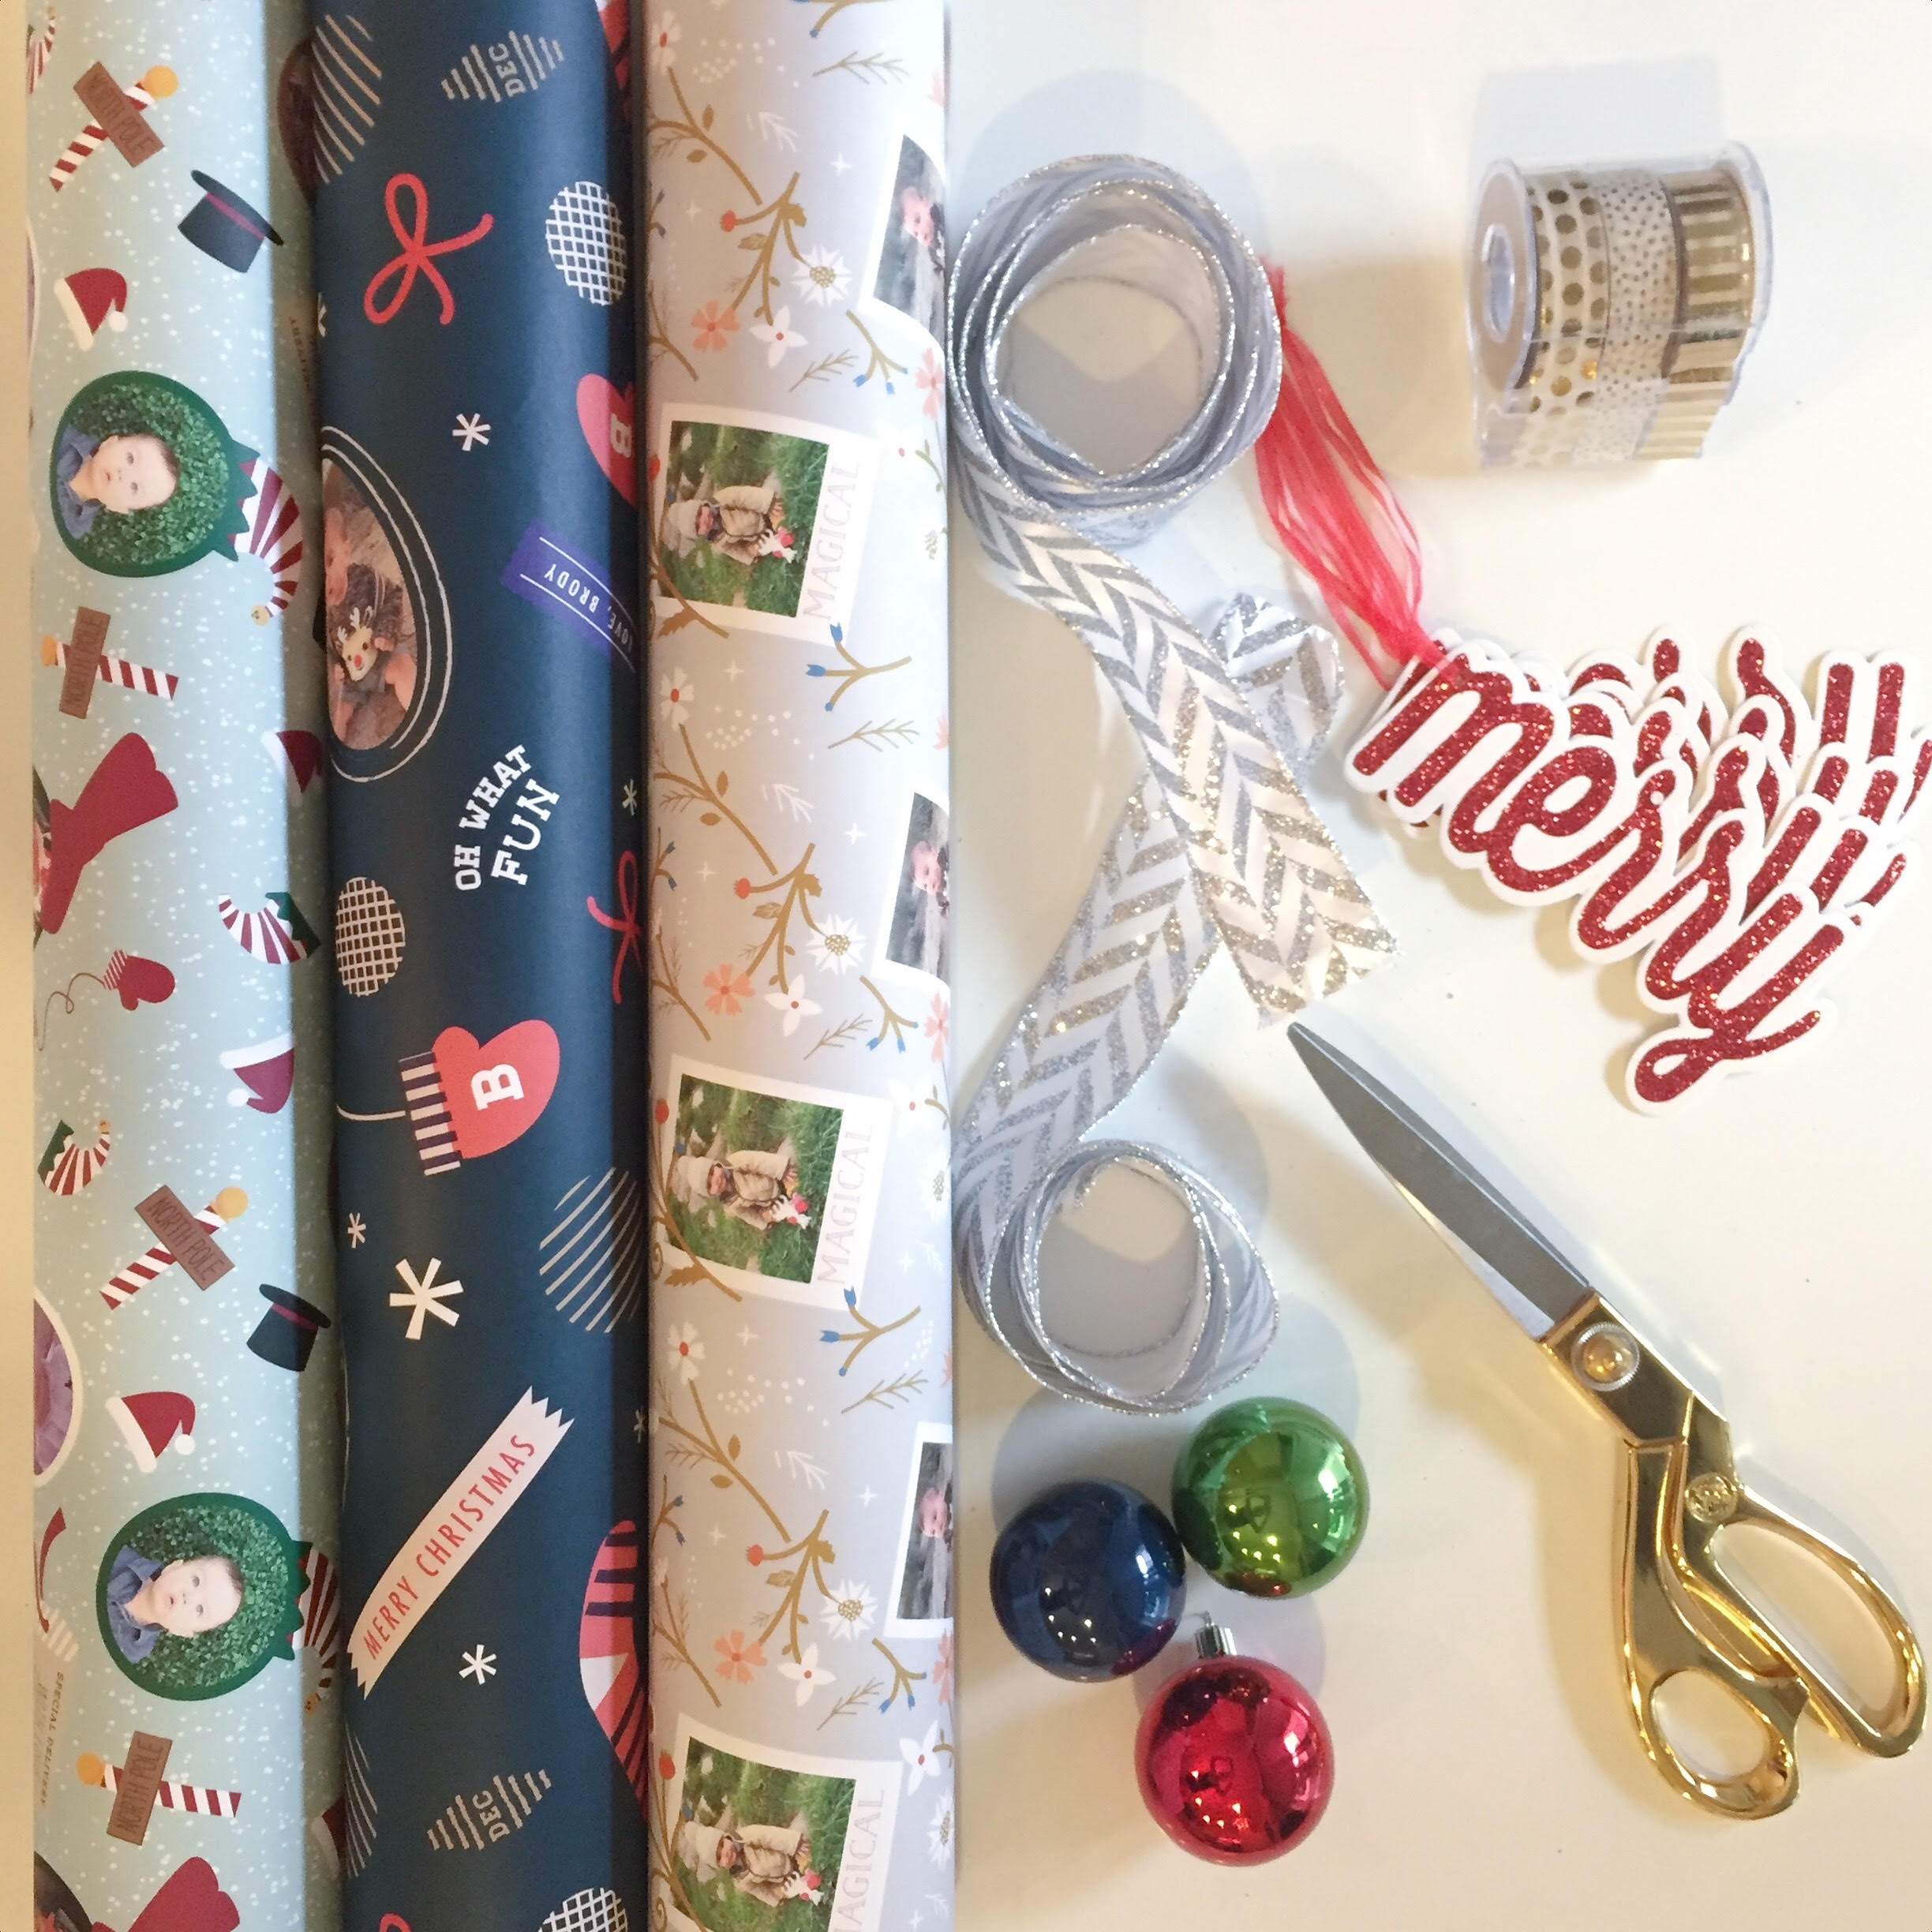 Personalized Wrapping Paper | Momma Society-The Community of Modern Moms | www.MommaSociety.com